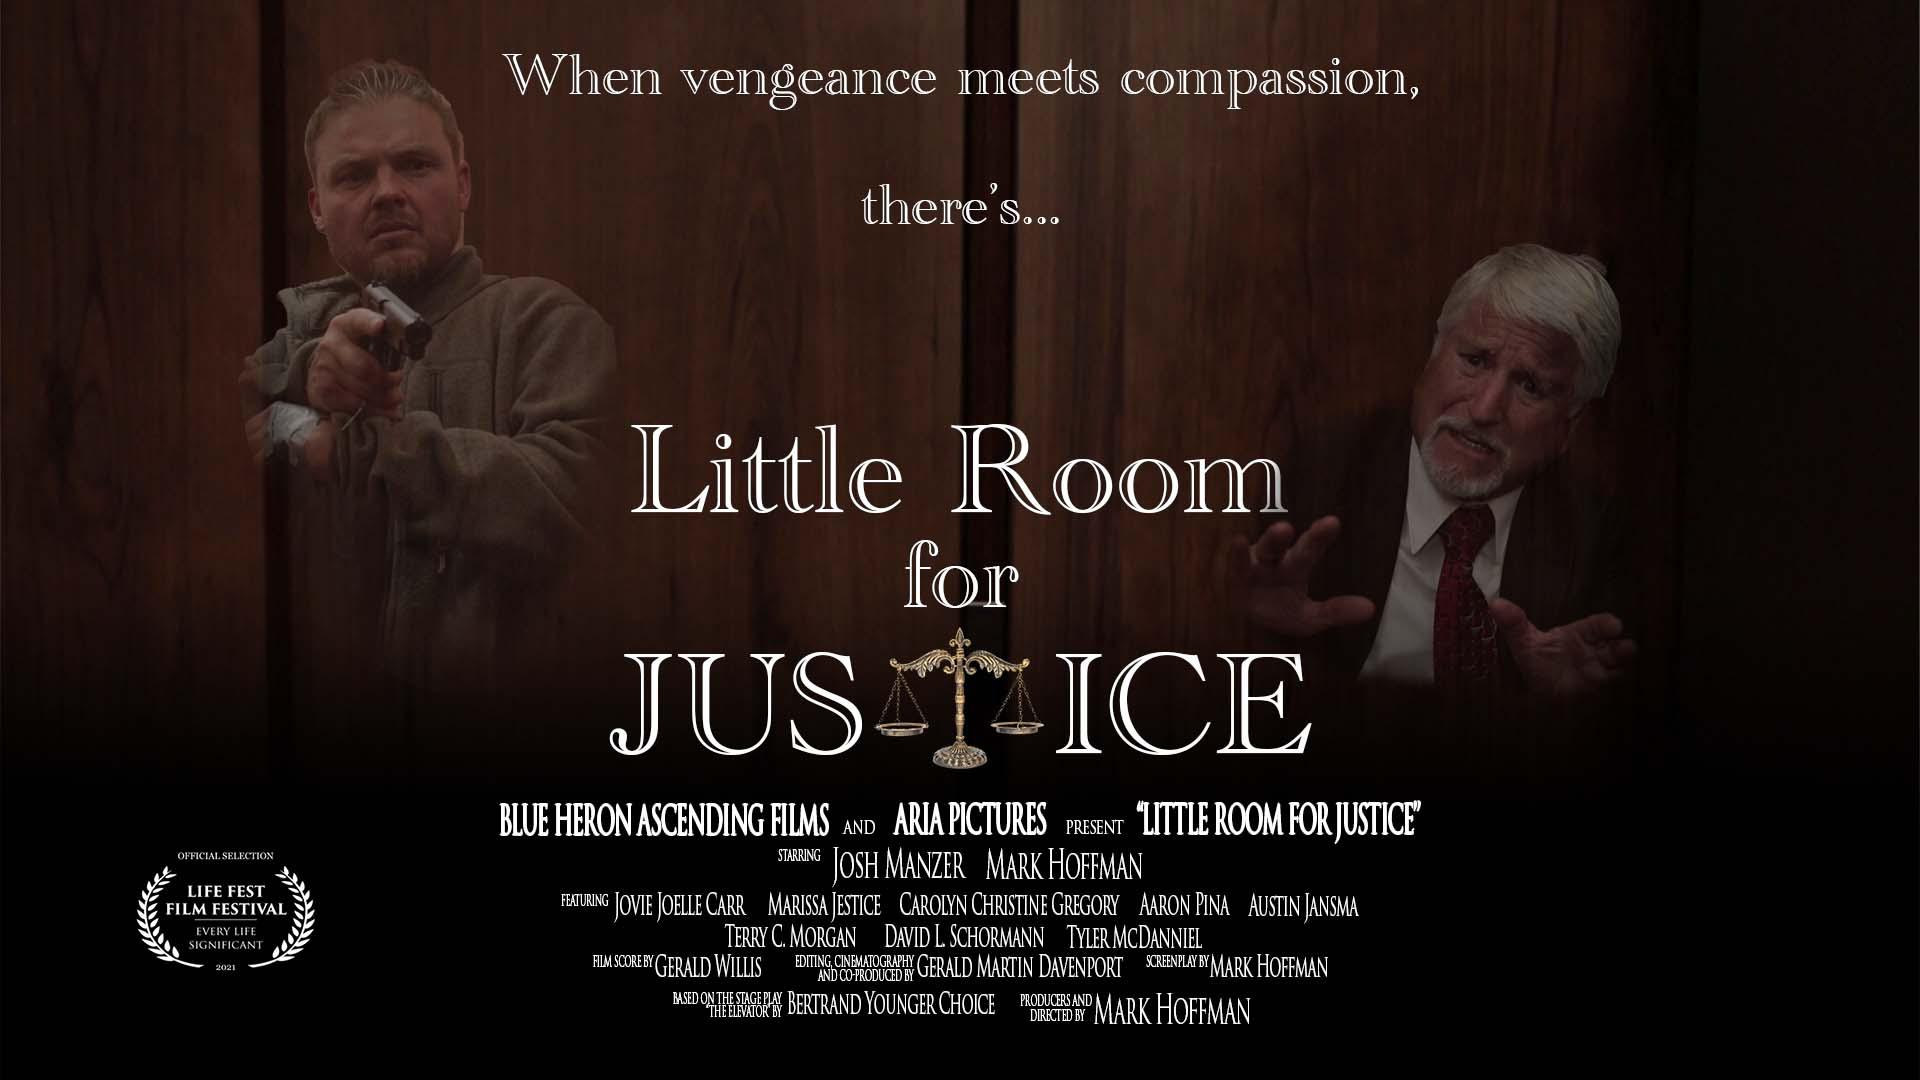 Little Room for Justice